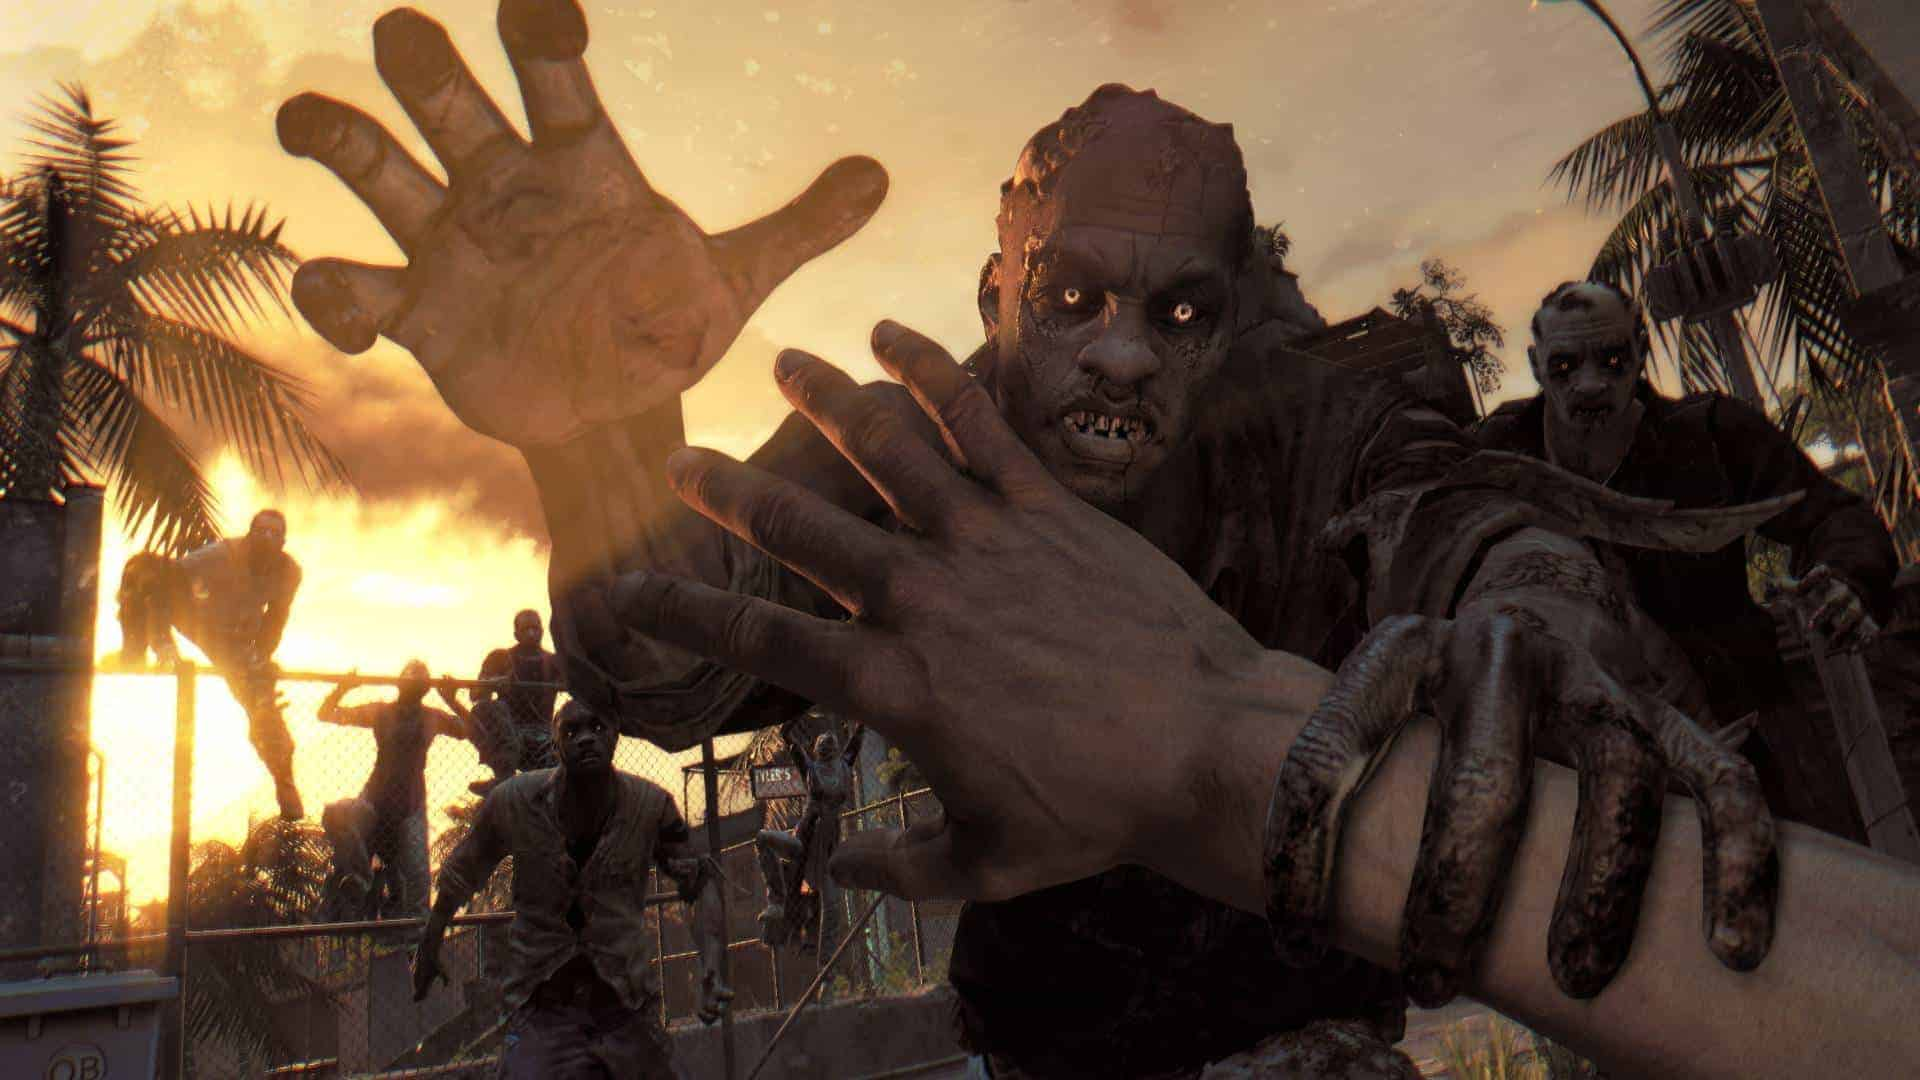 Dying Light Zombie Attack - Ultimate Gaming Paradise